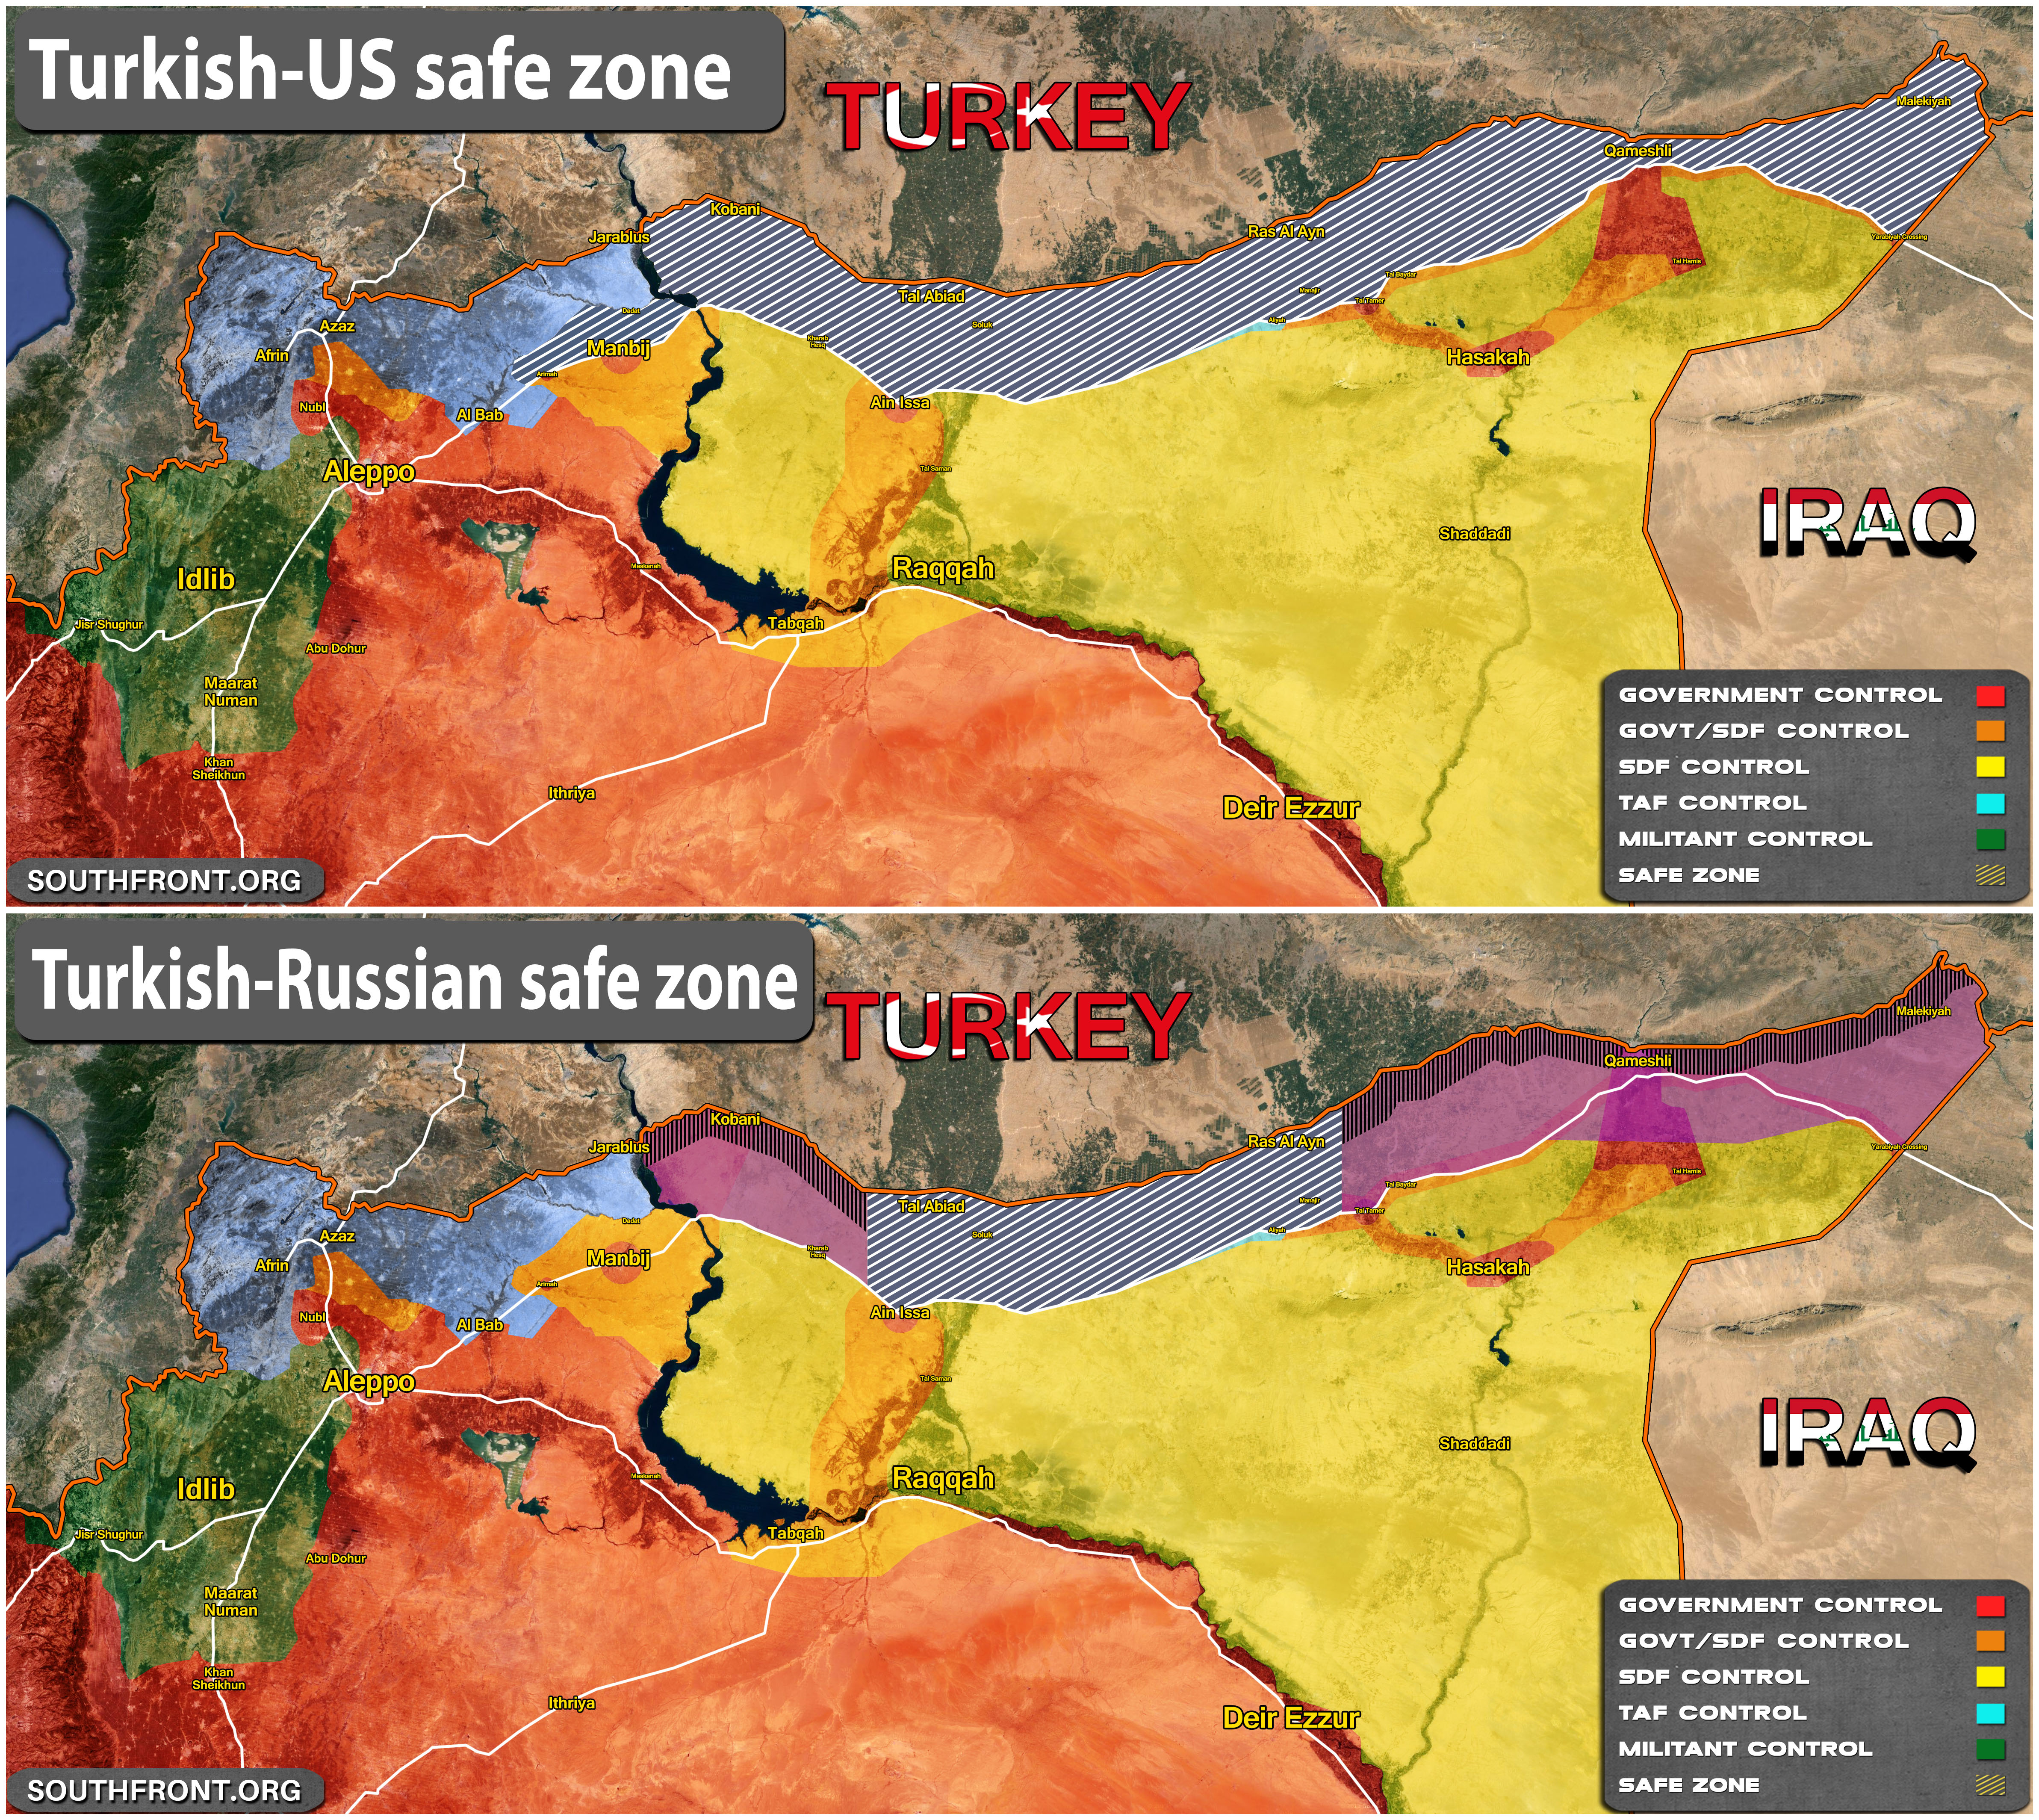 Map Comparison Turkish Us Safe Zone Vs